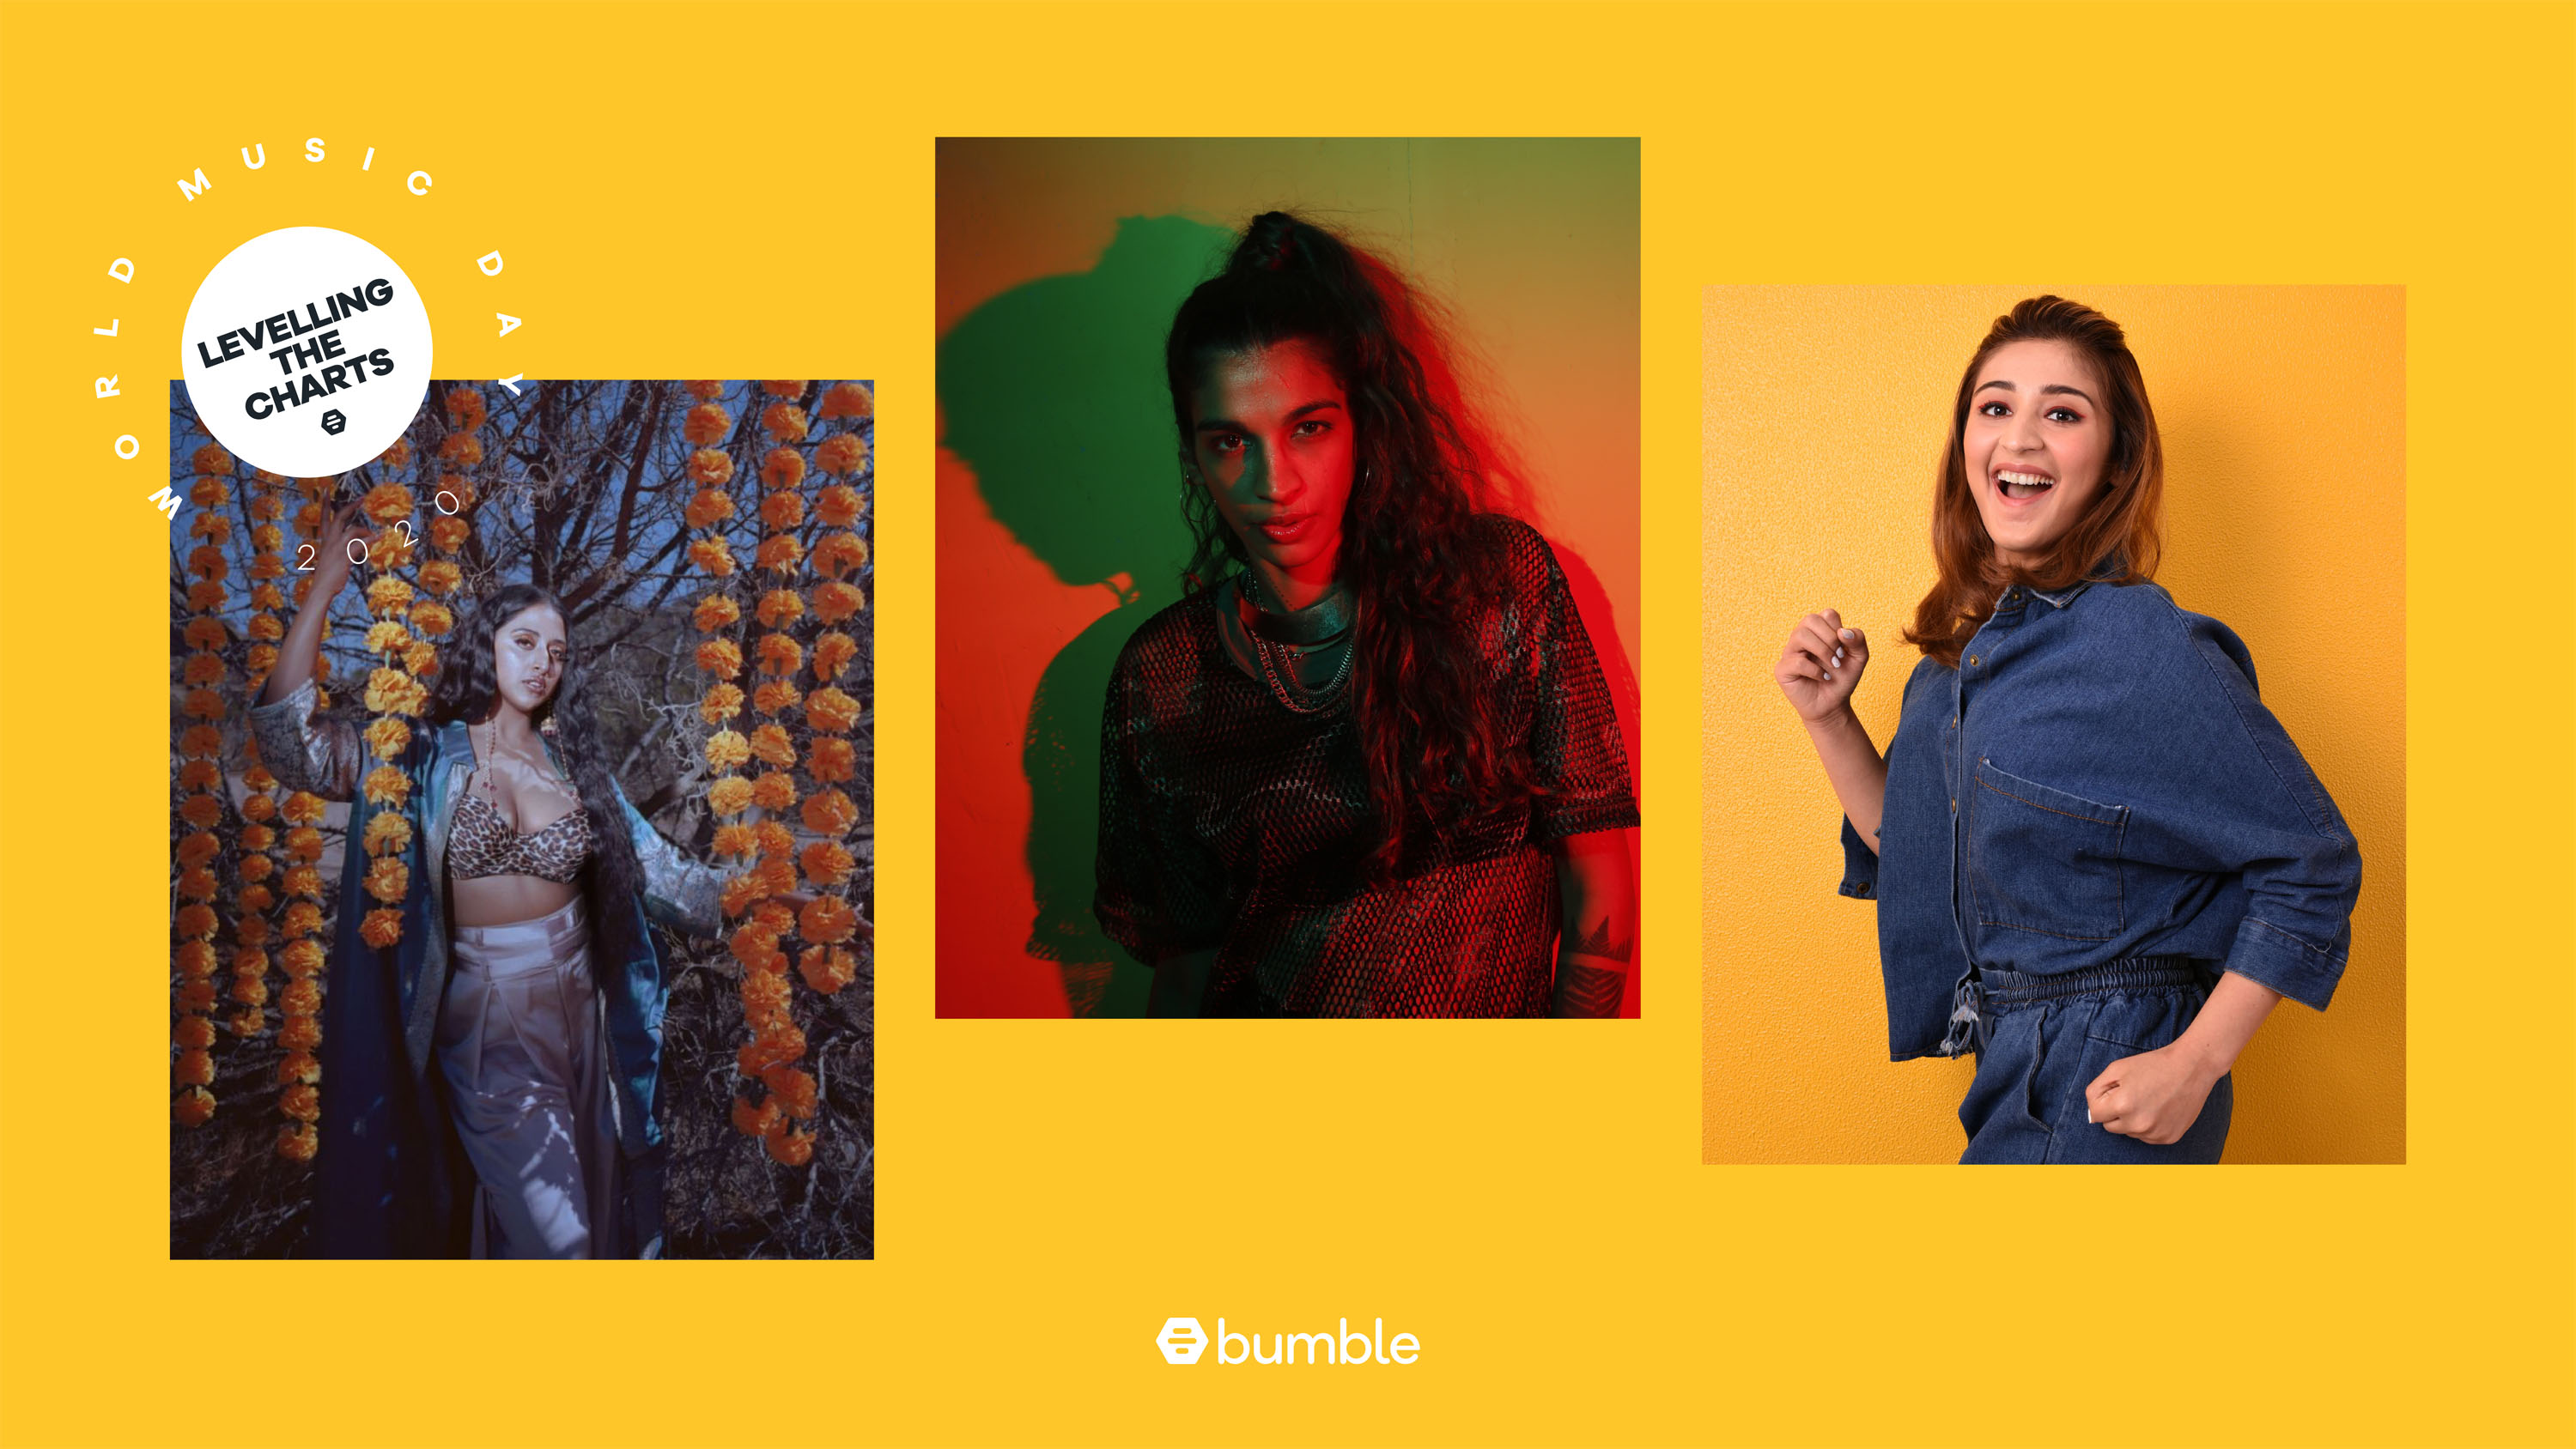 Bumble Launches Music Competition For Aspiring Female Artists